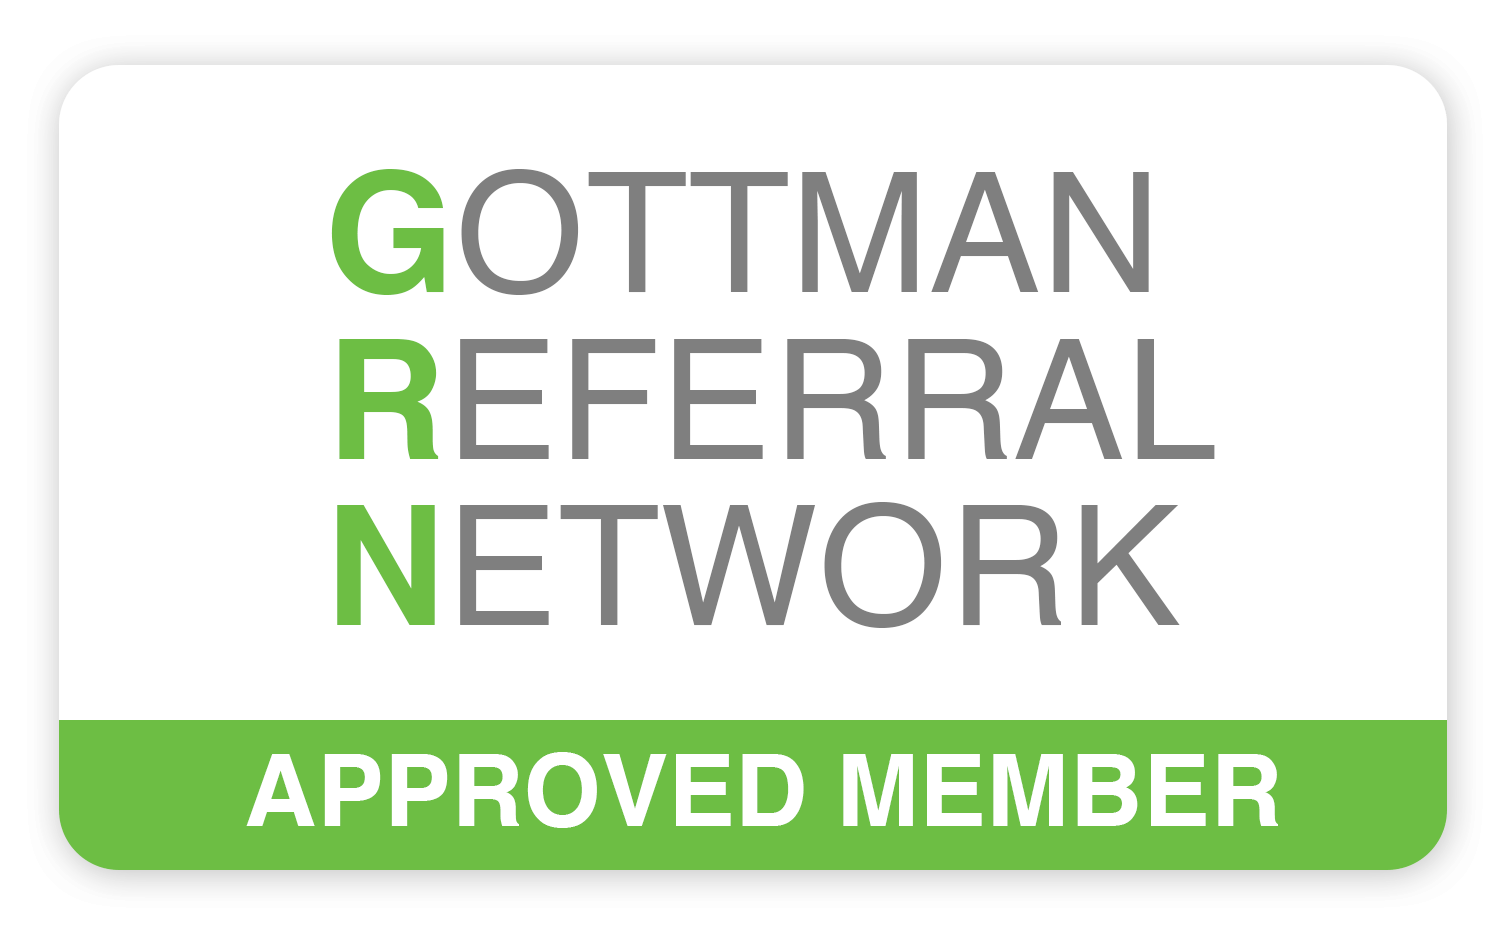 Sarah Calloway's profile on the Gottman Referral Network